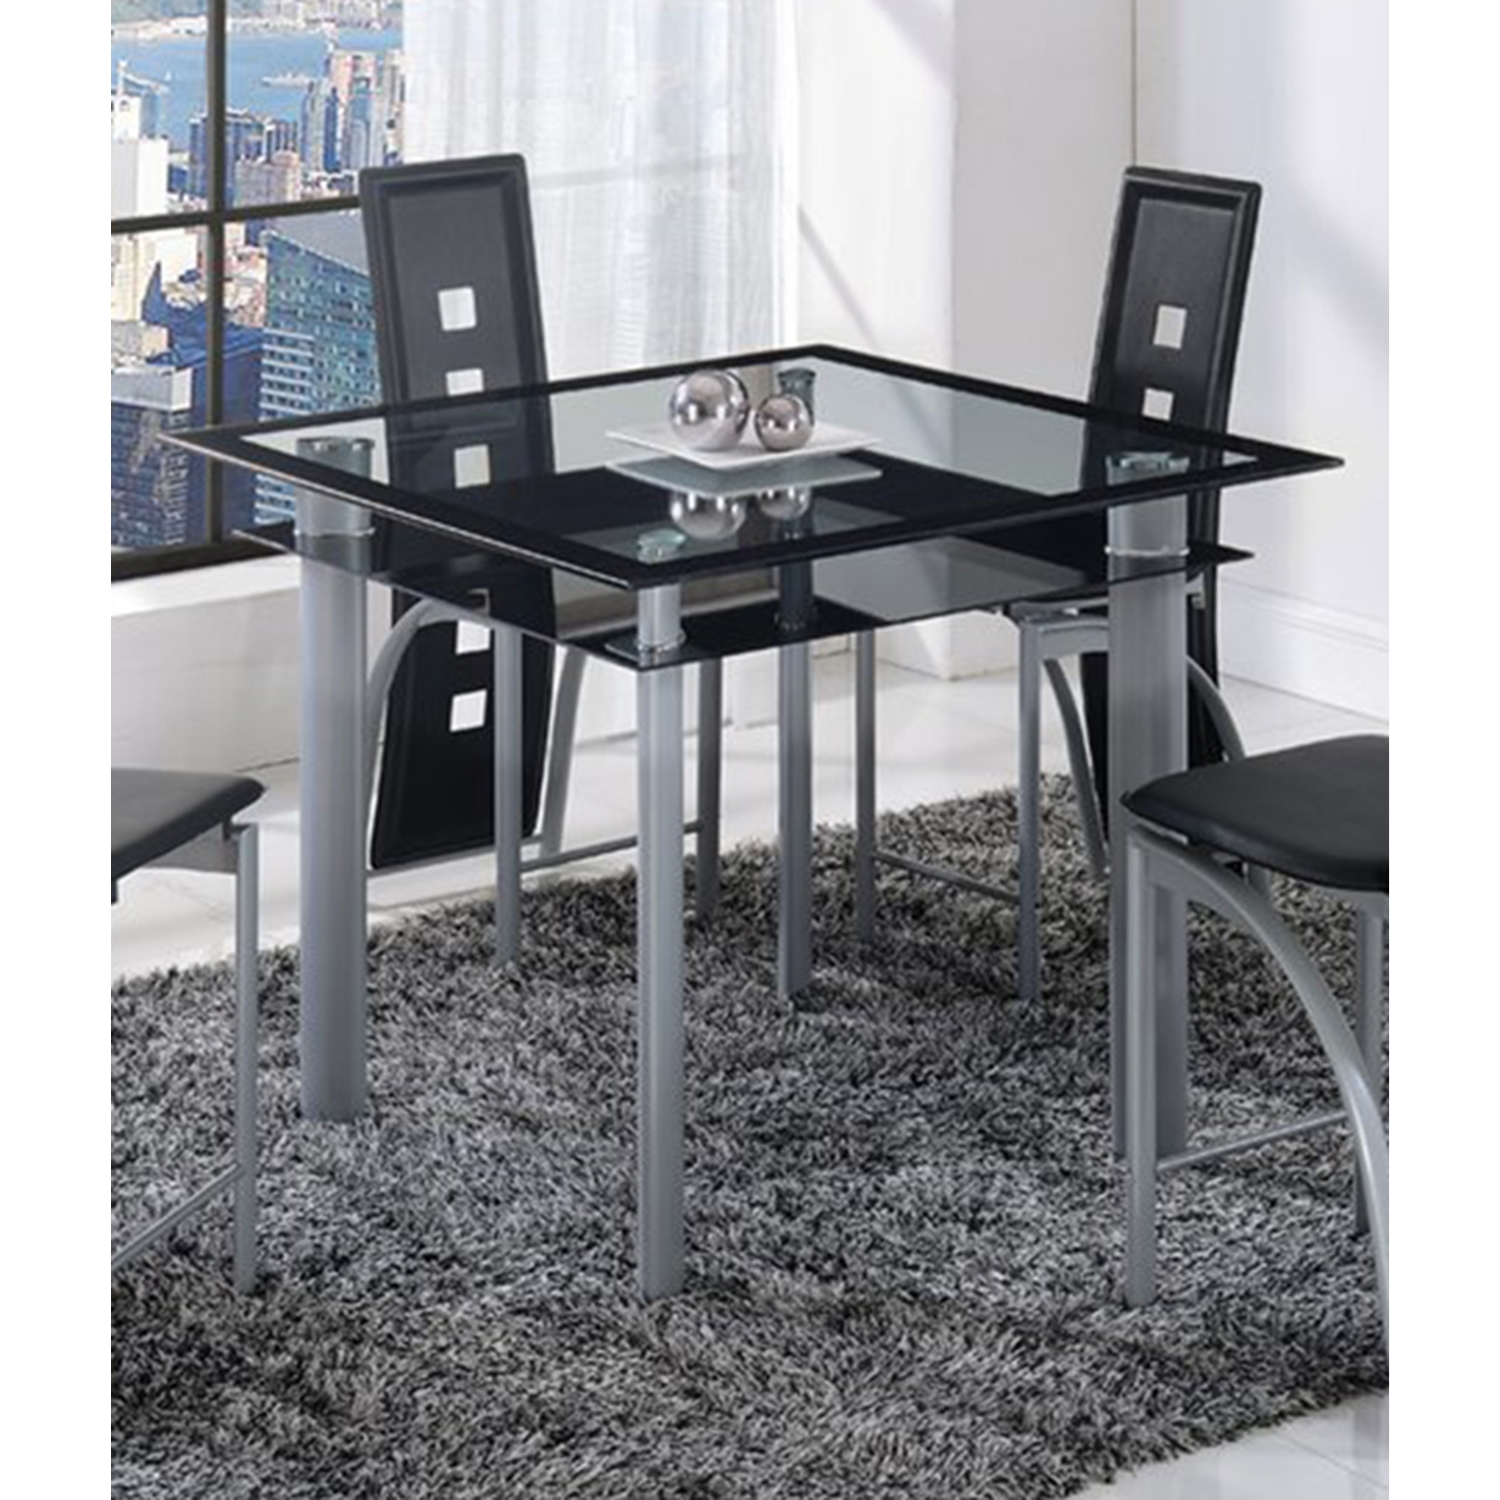 Sophia Counter Height Table - Black Stripe